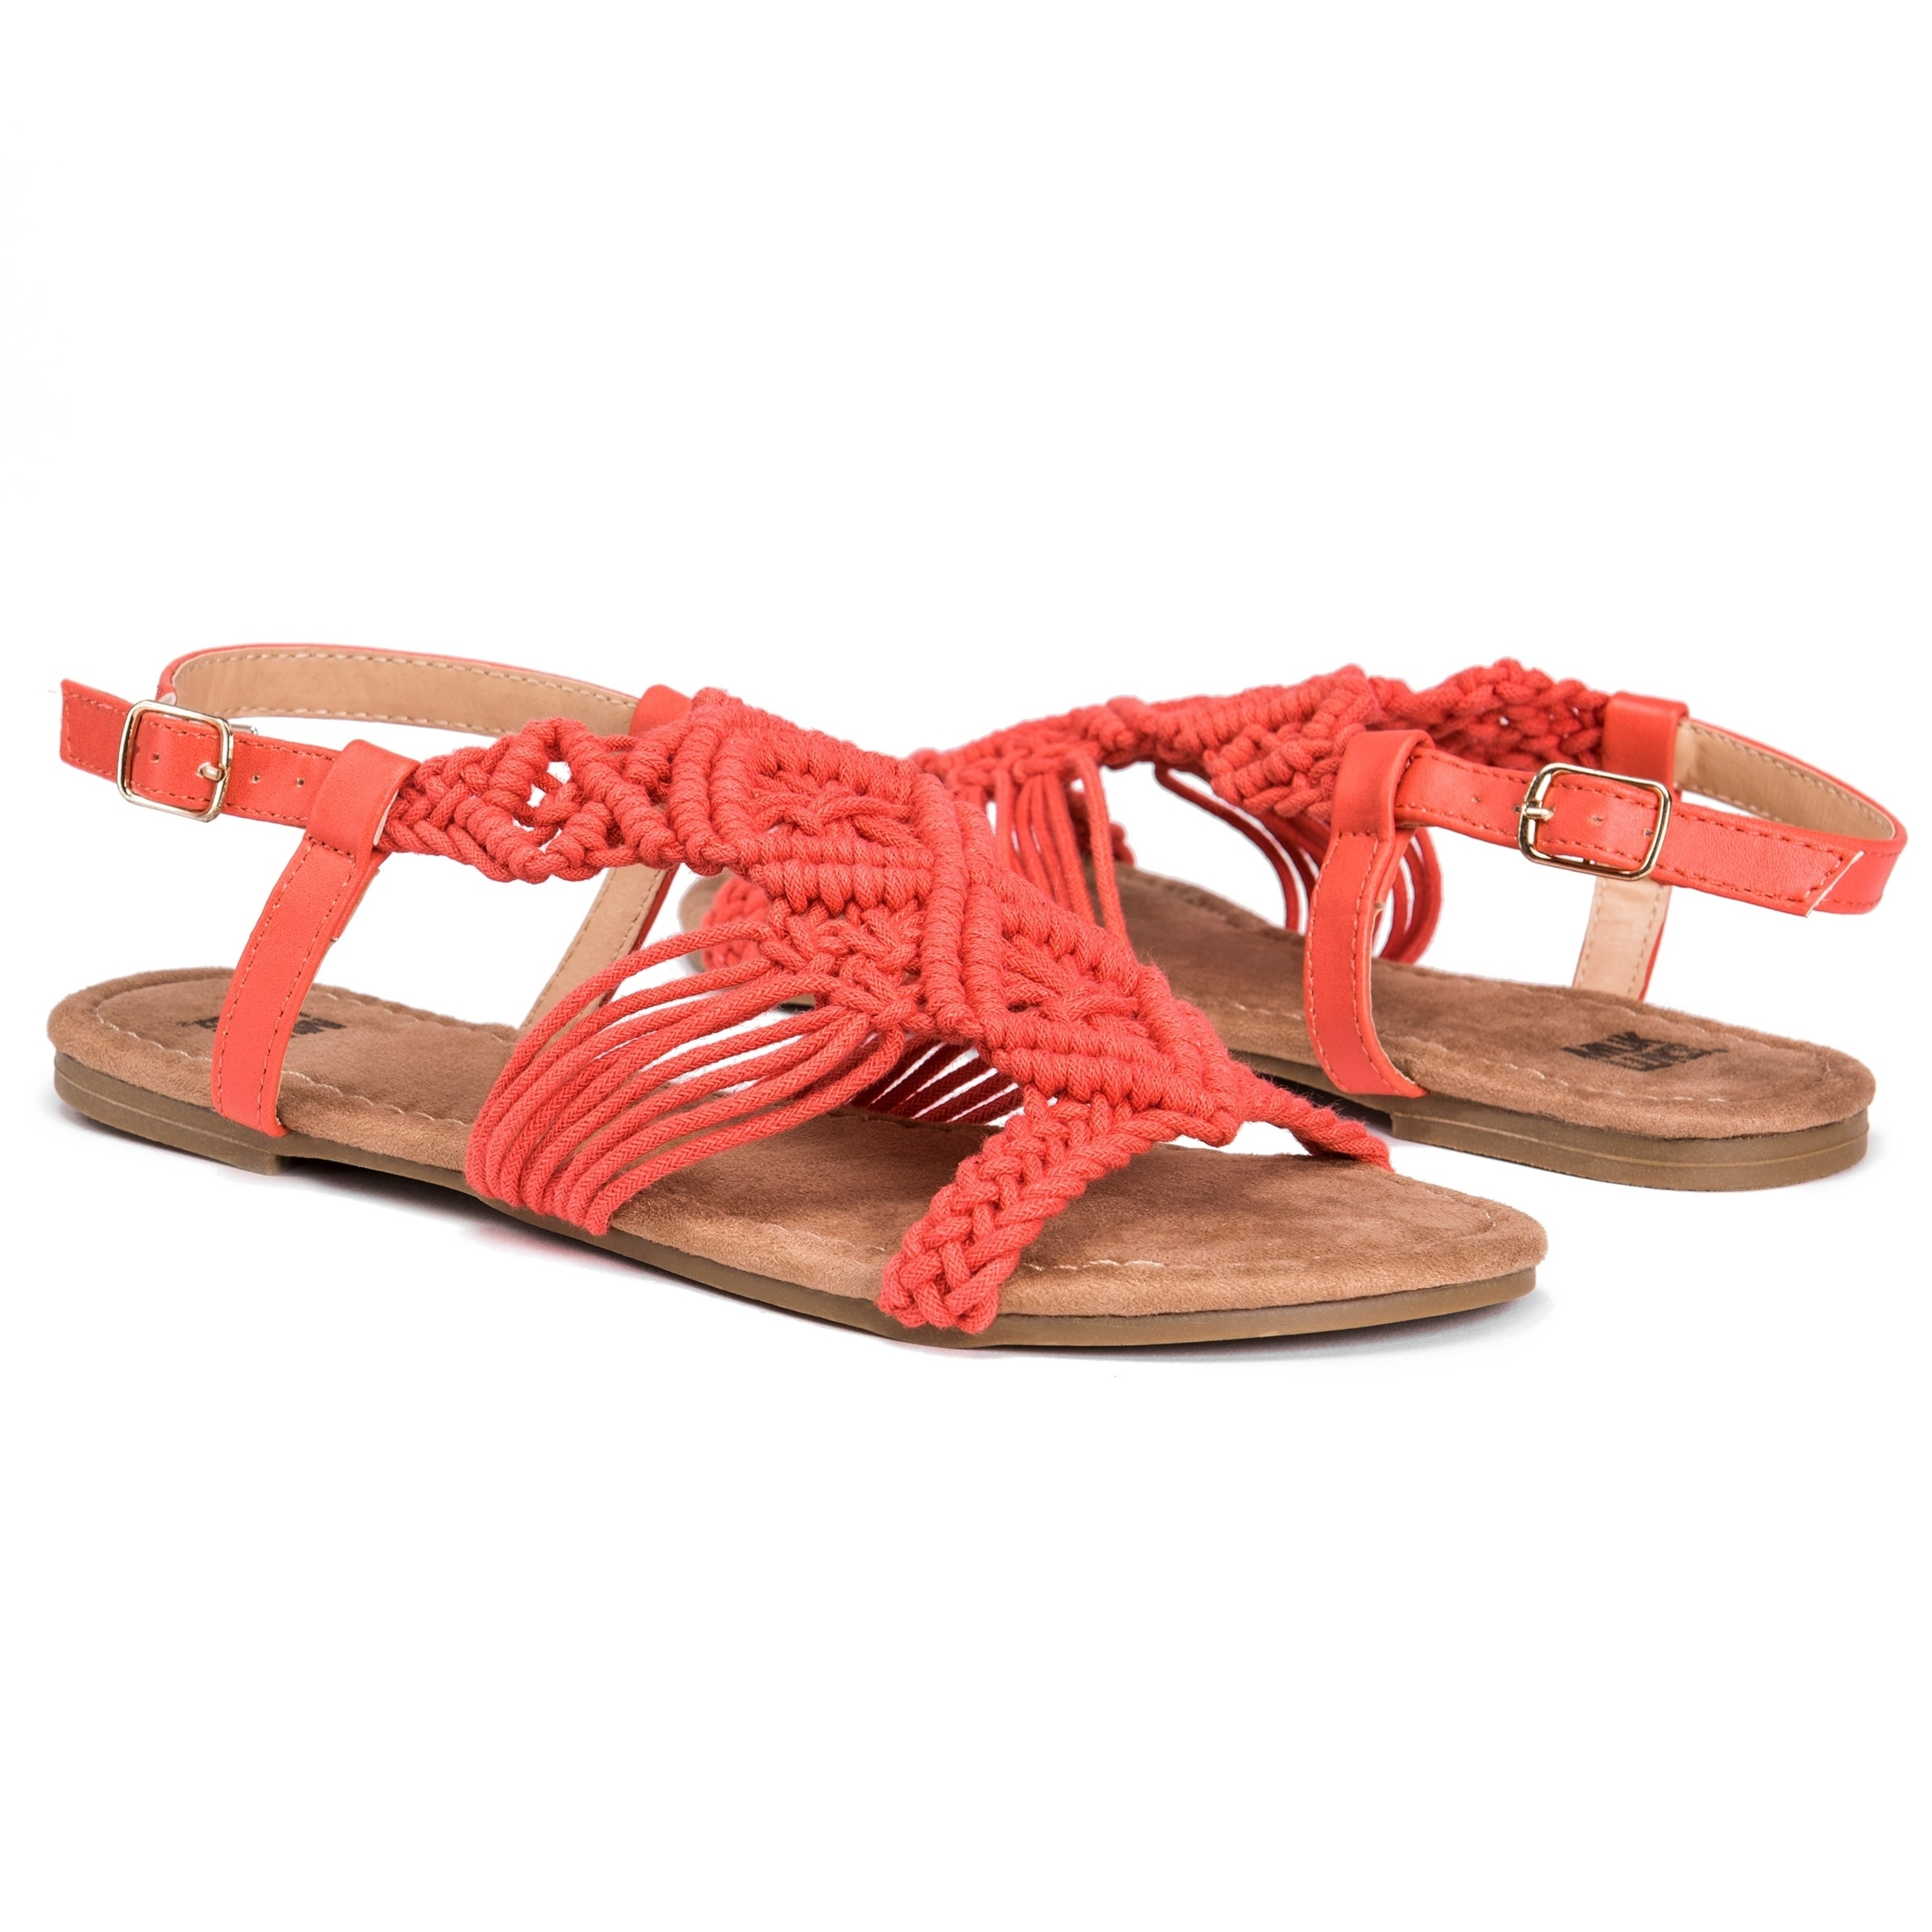 discount with credit card MUK LUKS Elise Women's ... Sling-Back Sandals buy cheap 2015 NcncWPOWP